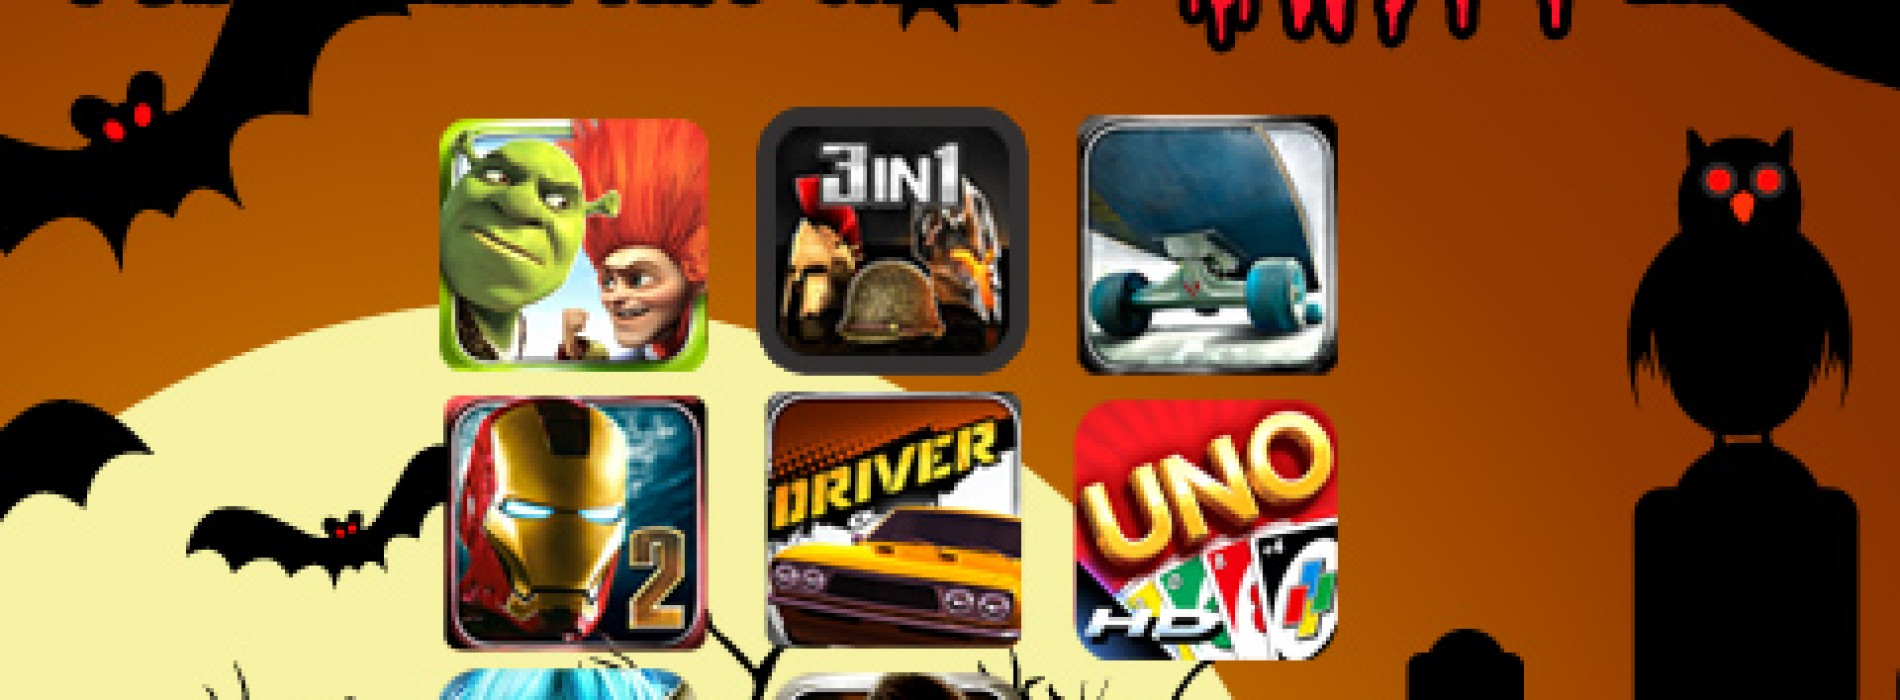 GameLoft Slashes Game Prices for Halloween